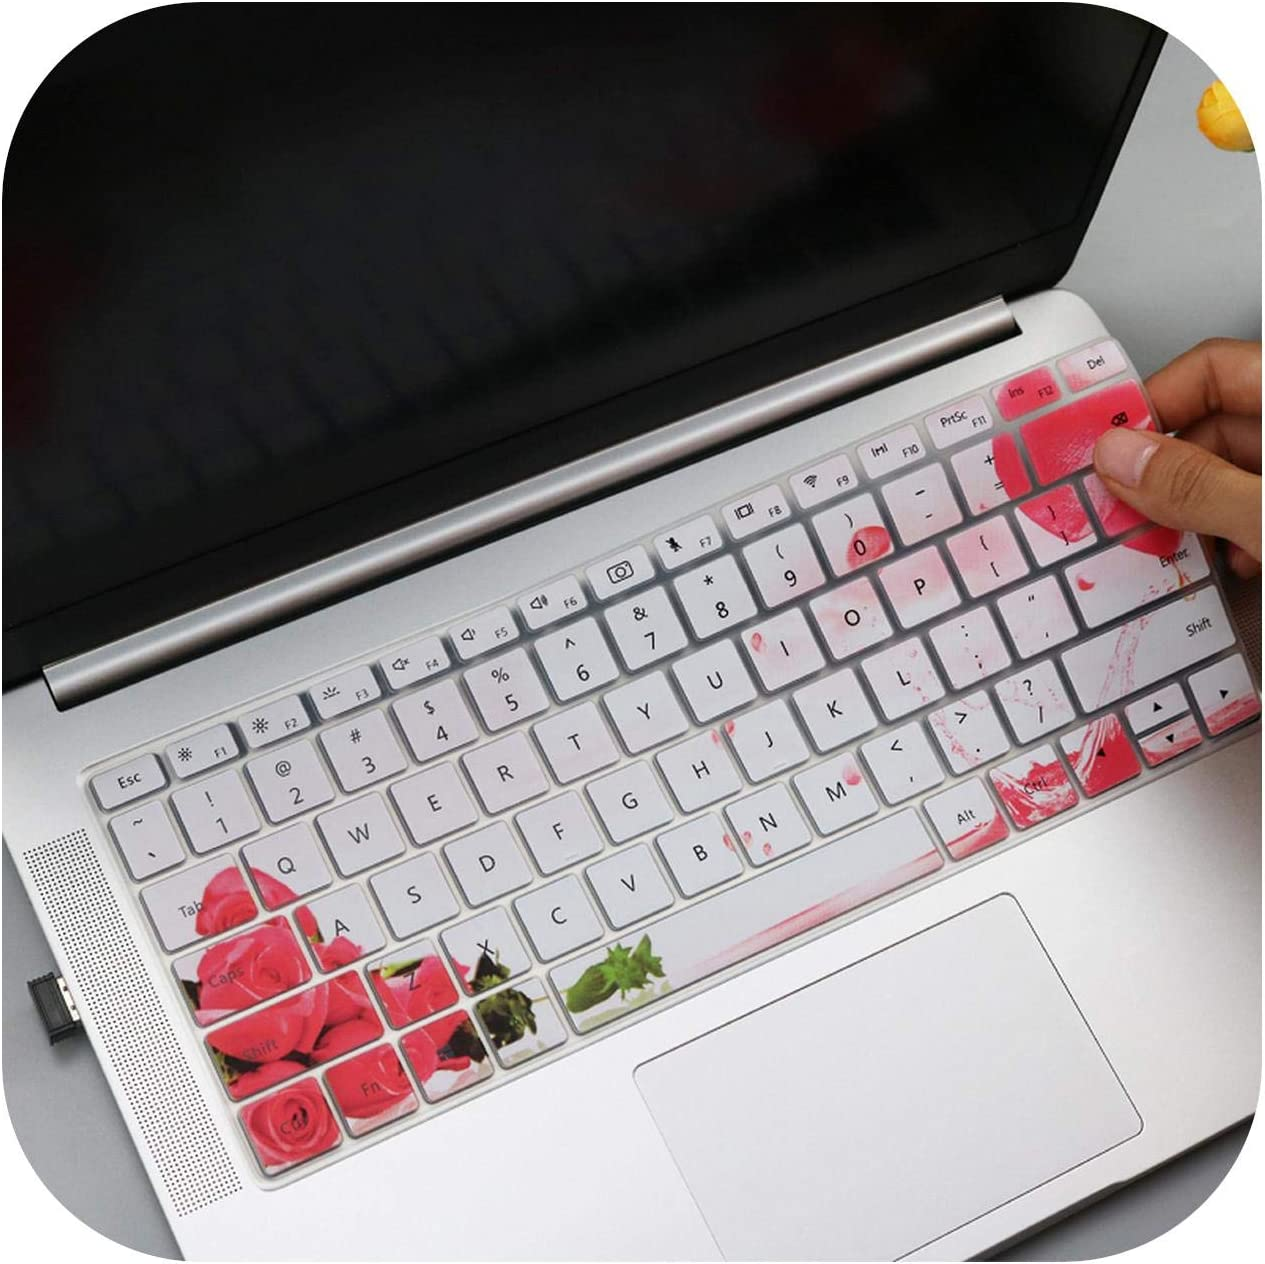 Film Pour Clavier for Huawei Matebook X Pro Mach W19C 13.9 Laptop 2018 2019 Keyboard Cover Protector Skin for Huawei Matebook X Pro Laptop-Flower